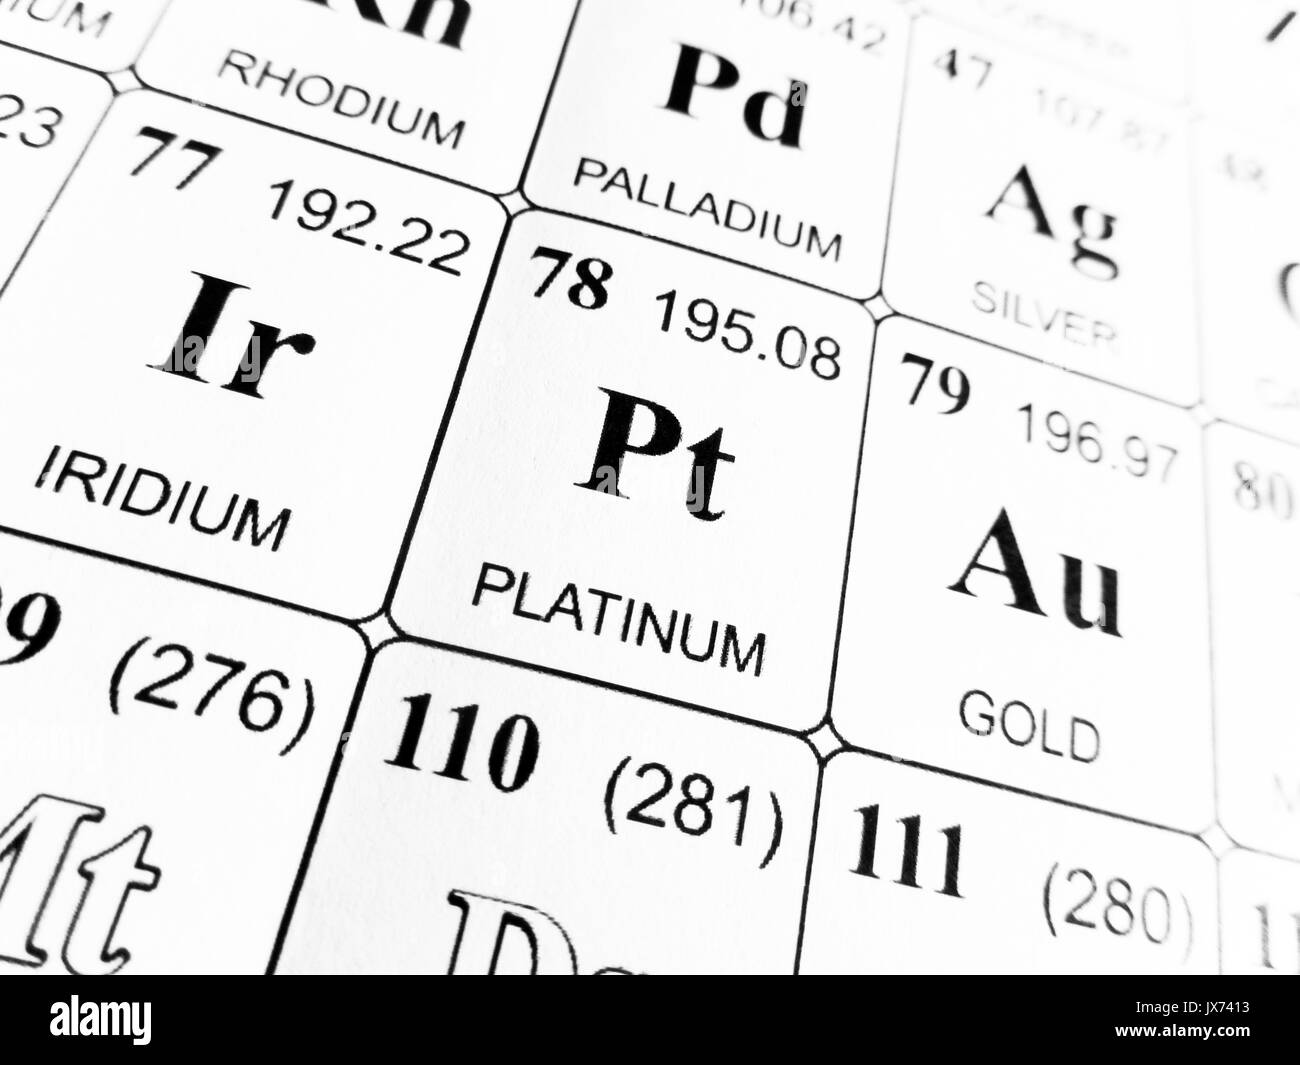 Platinum periodic table image collections periodic table images iridium on the periodic table images periodic table images au on periodic table choice image periodic gamestrikefo Image collections